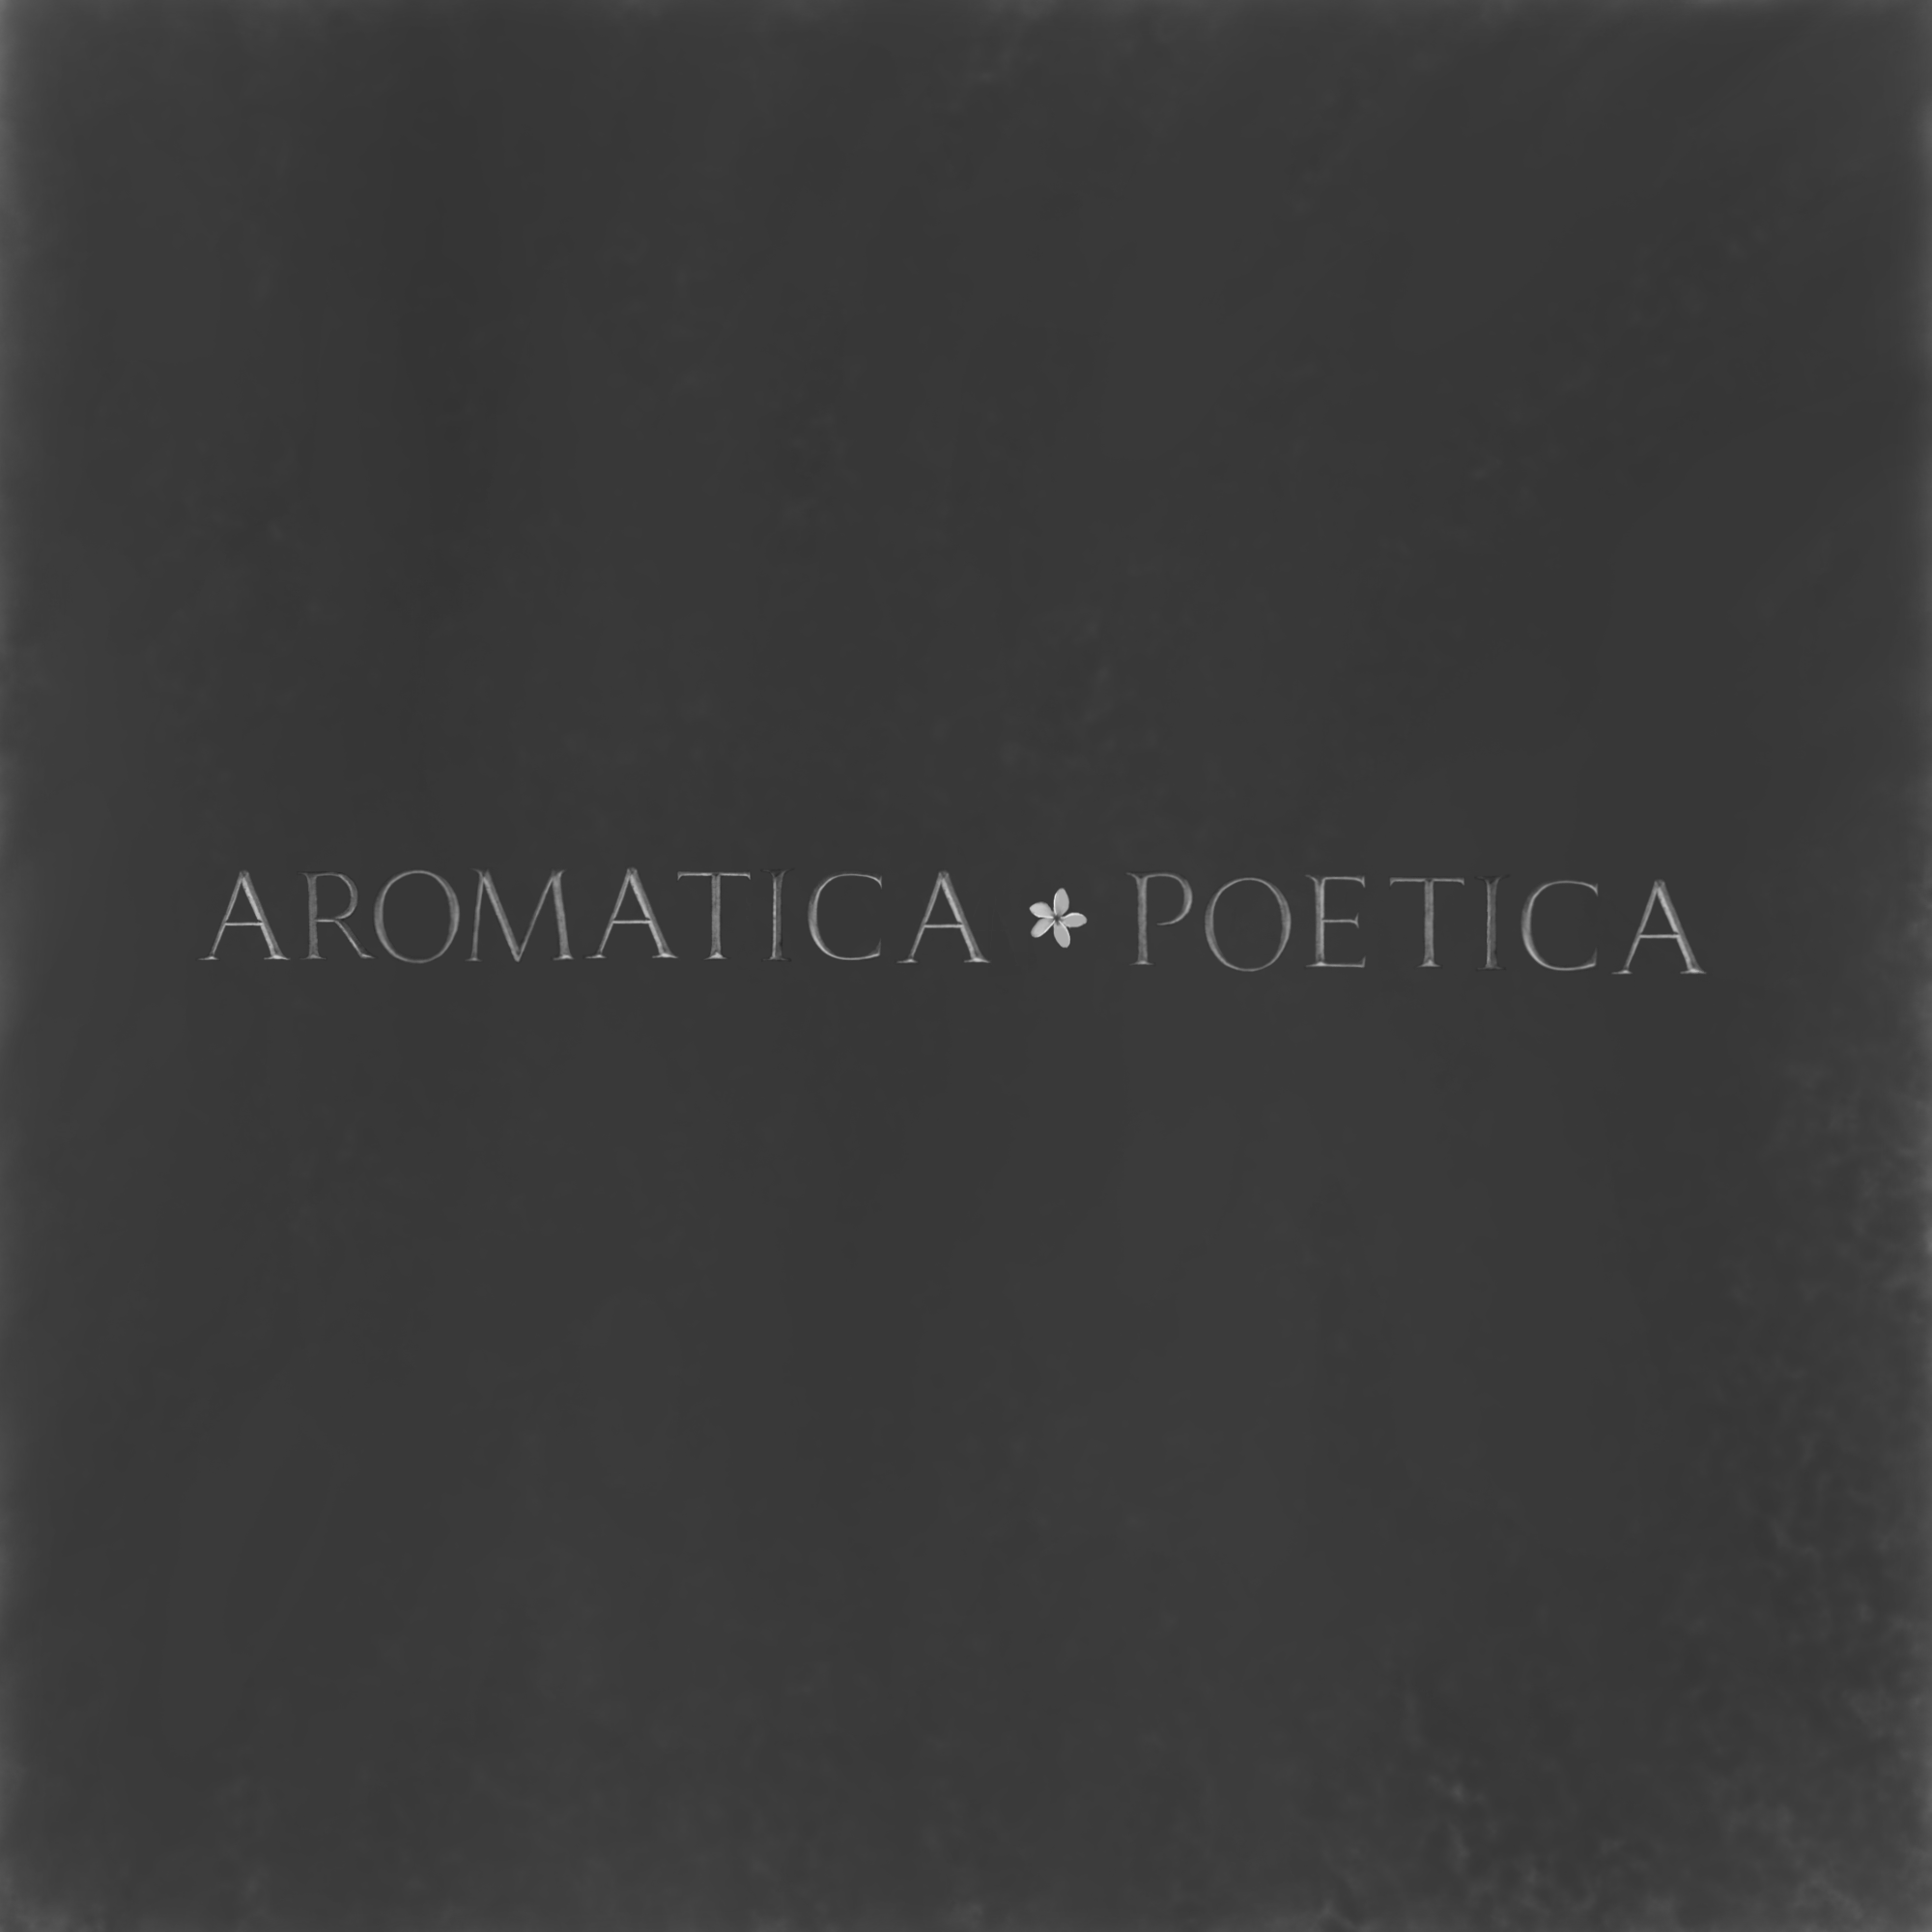 Aromatica Poetica, My New Magazine Dedicated to the Arts & Sciences of Smell